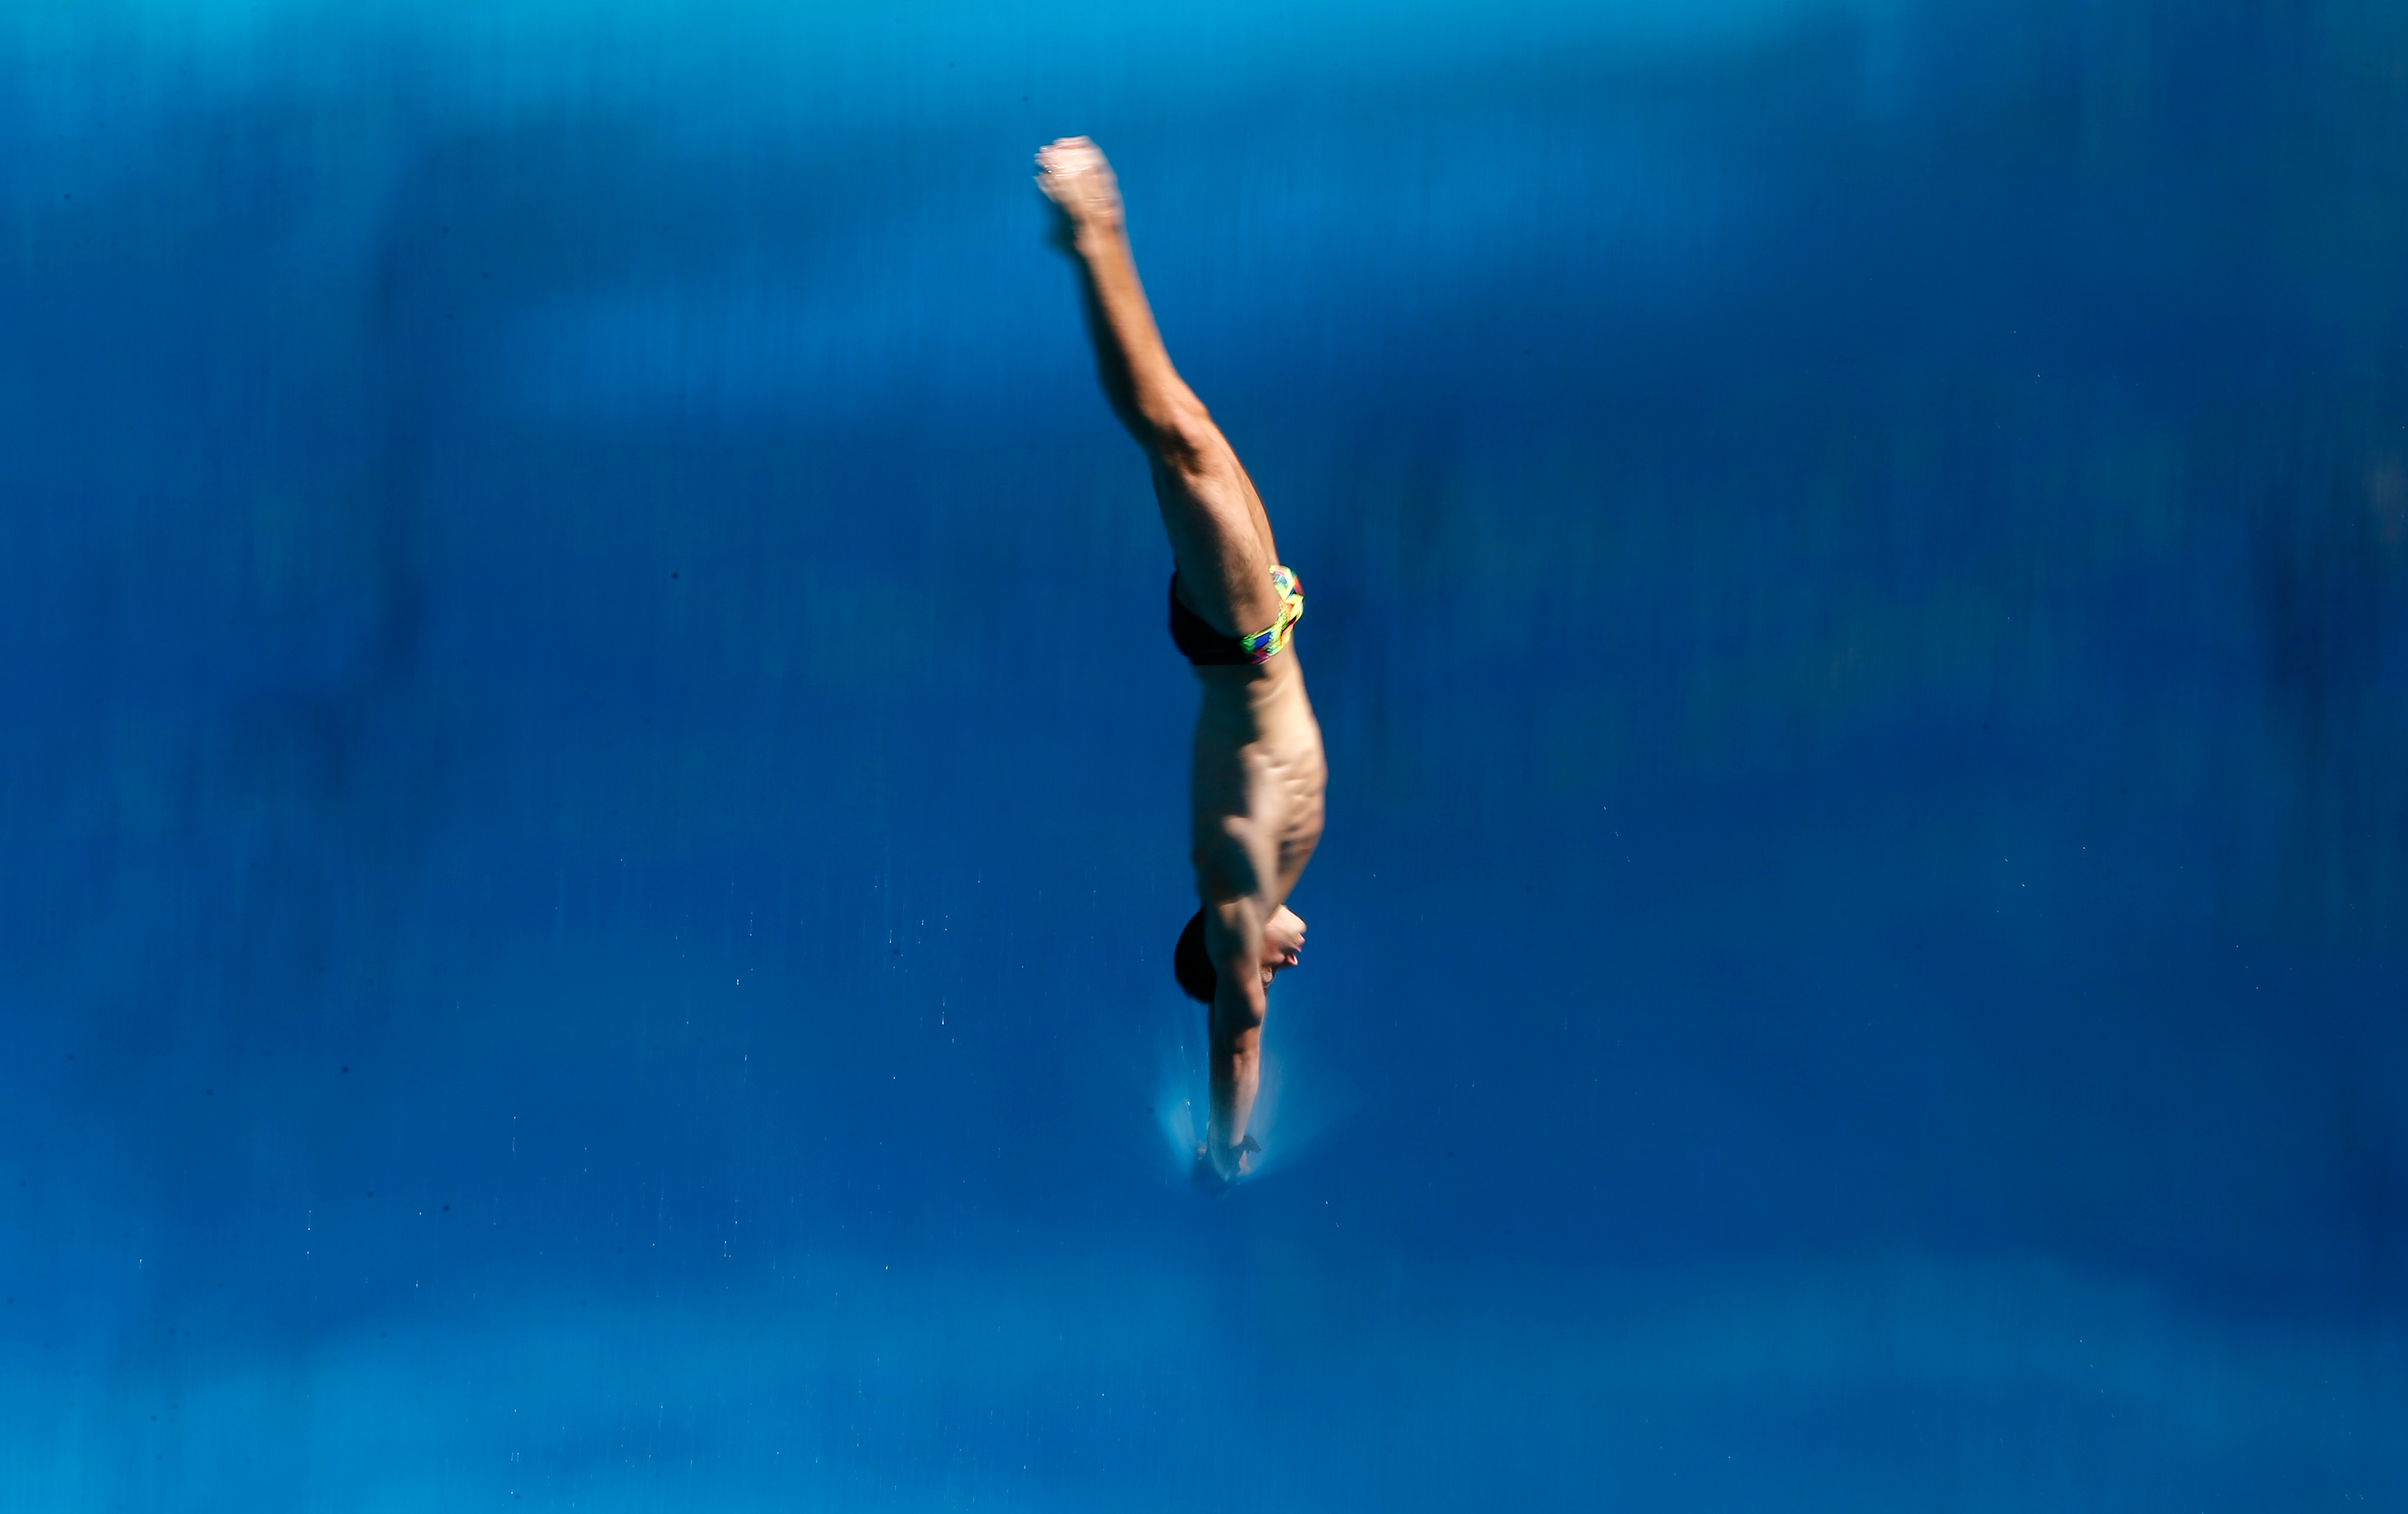 olympic diving and olympic history essay Diving | olympic sport - the official site with a great overview of diving competition rules, event schedule and venue information, plus interesting background history and fun facts, news, photos.